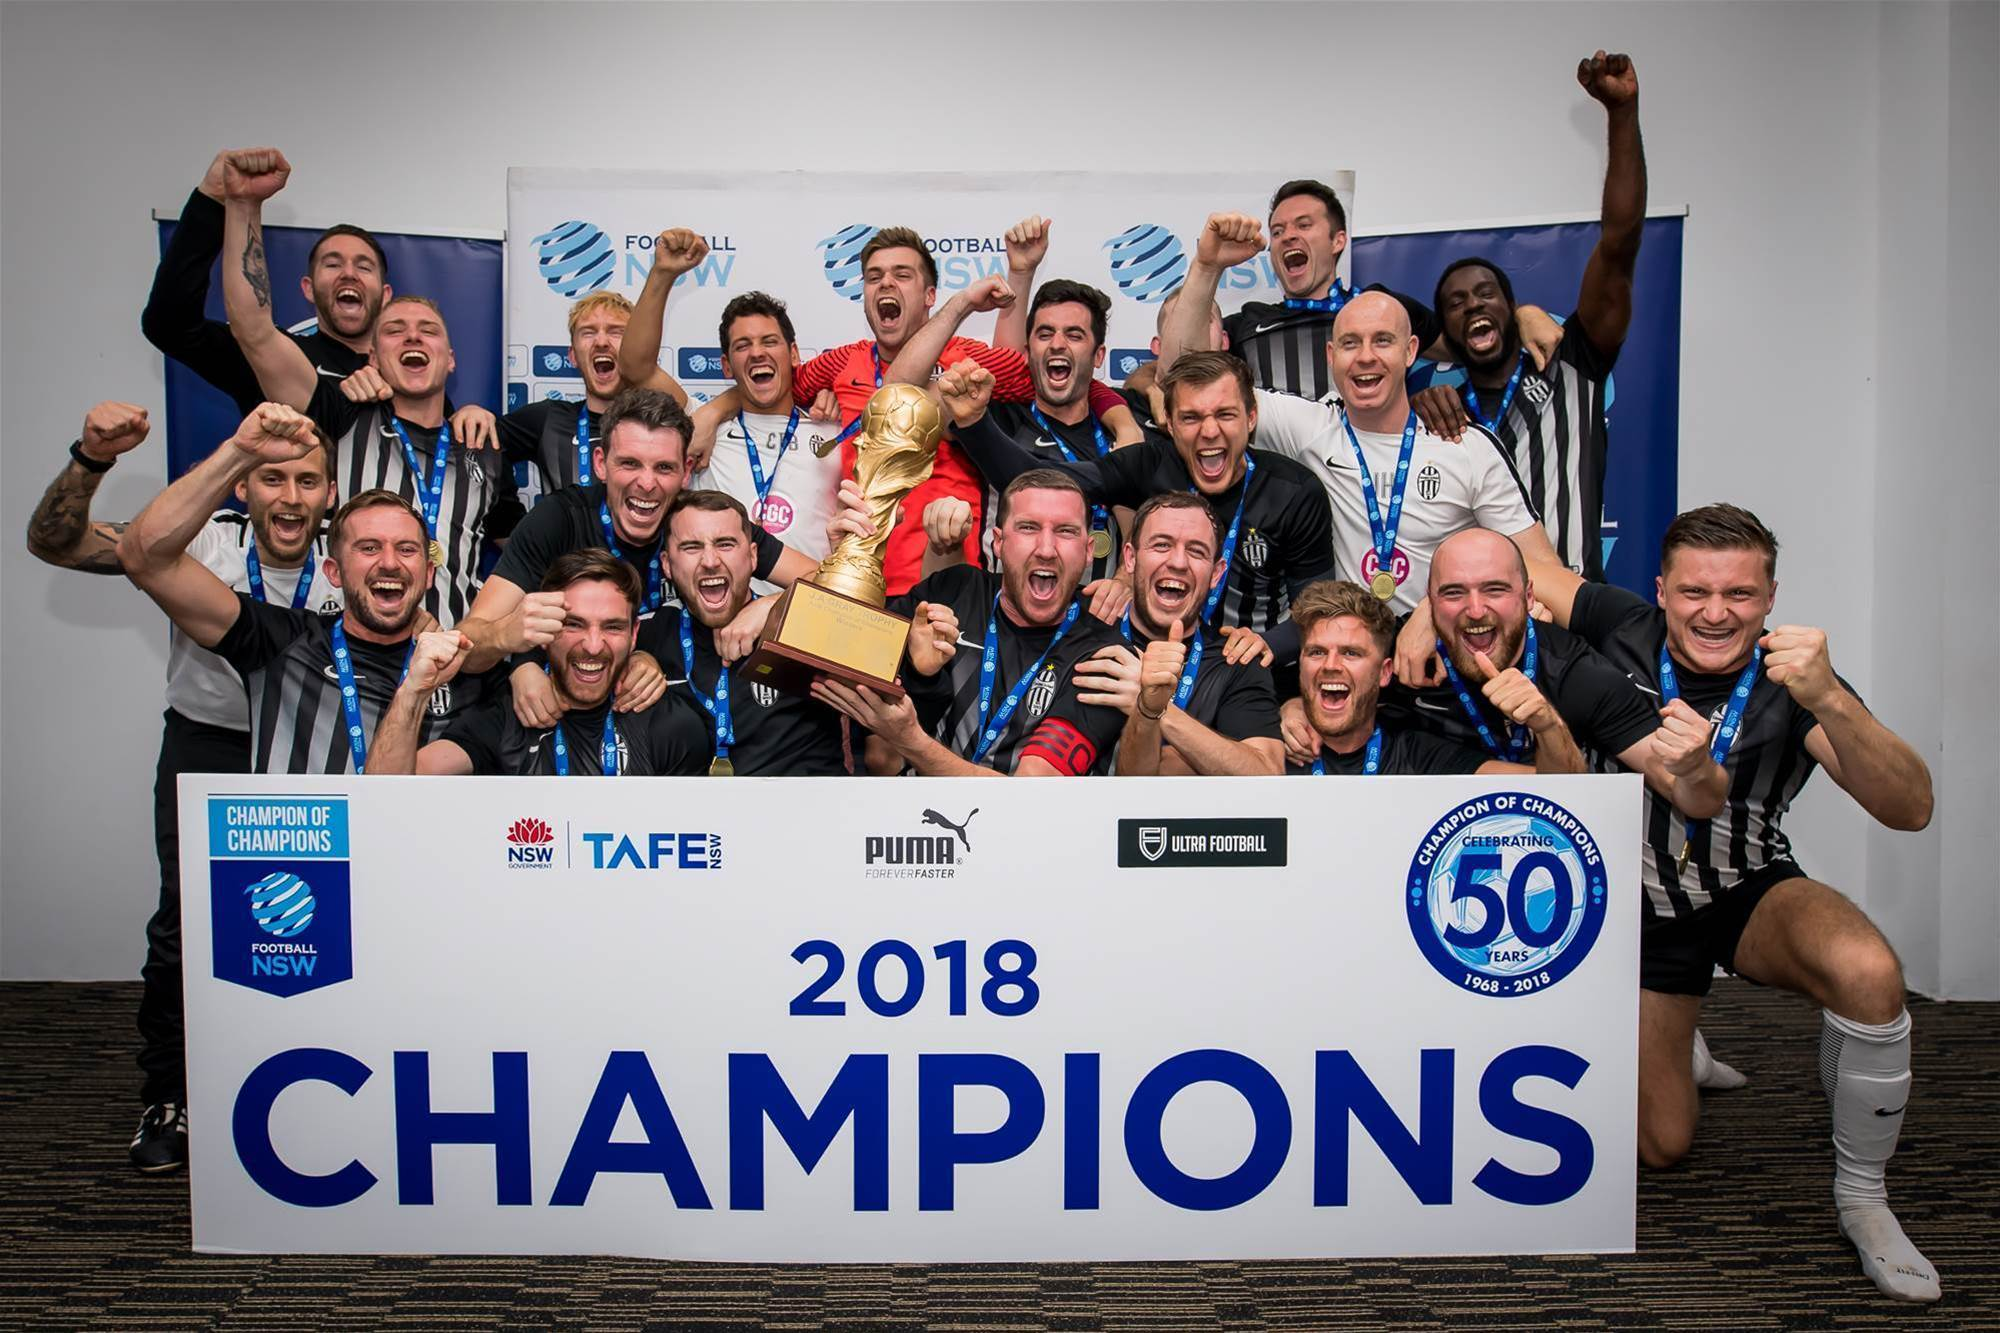 Champions of Champions celebrates 50 years!